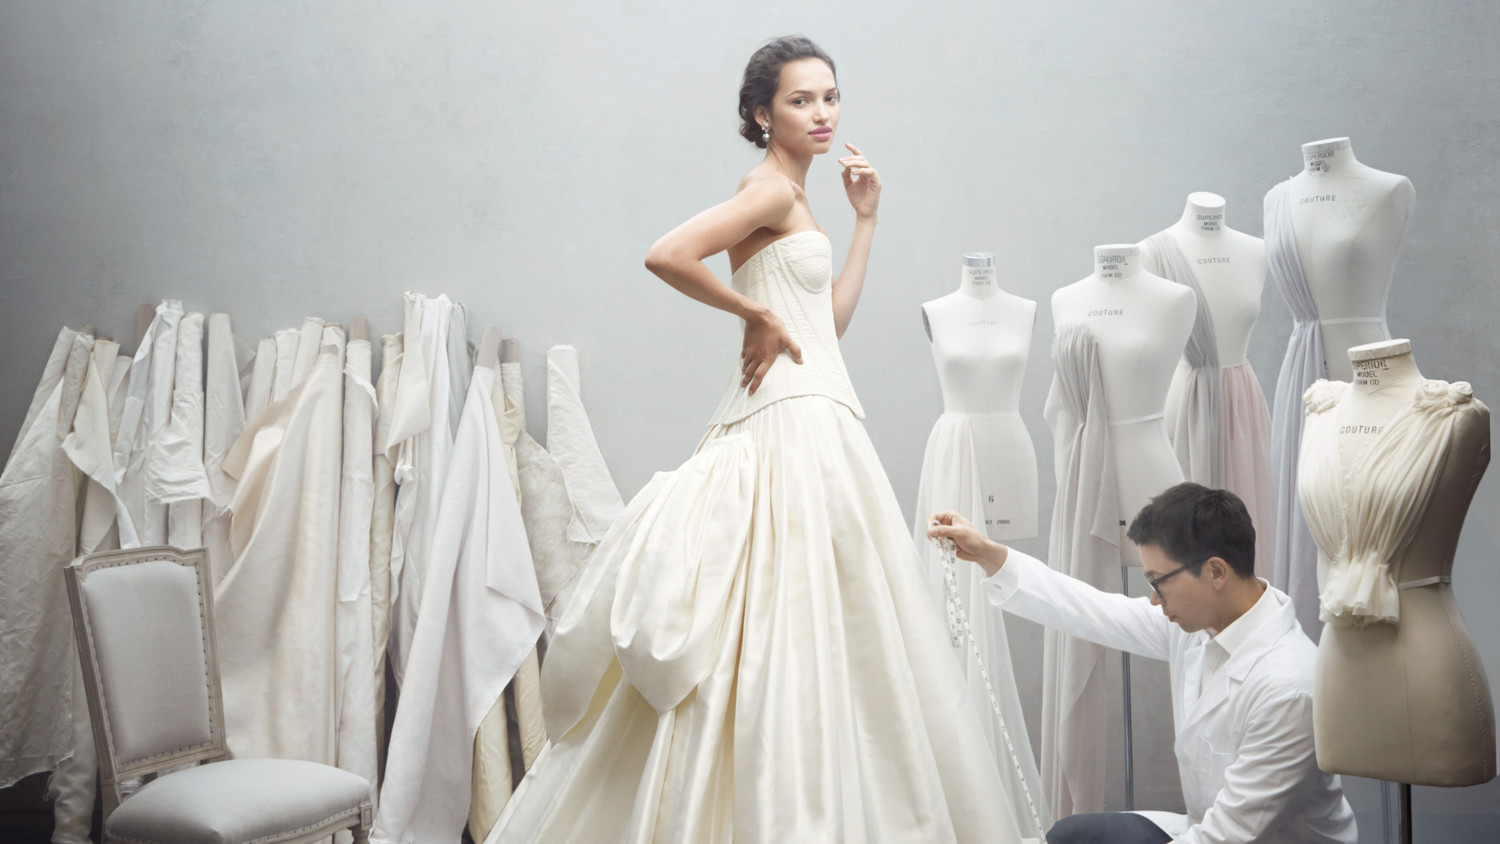 All You Need Is A Wisely Chosen Wedding Wear and Not the Perfection of Figure